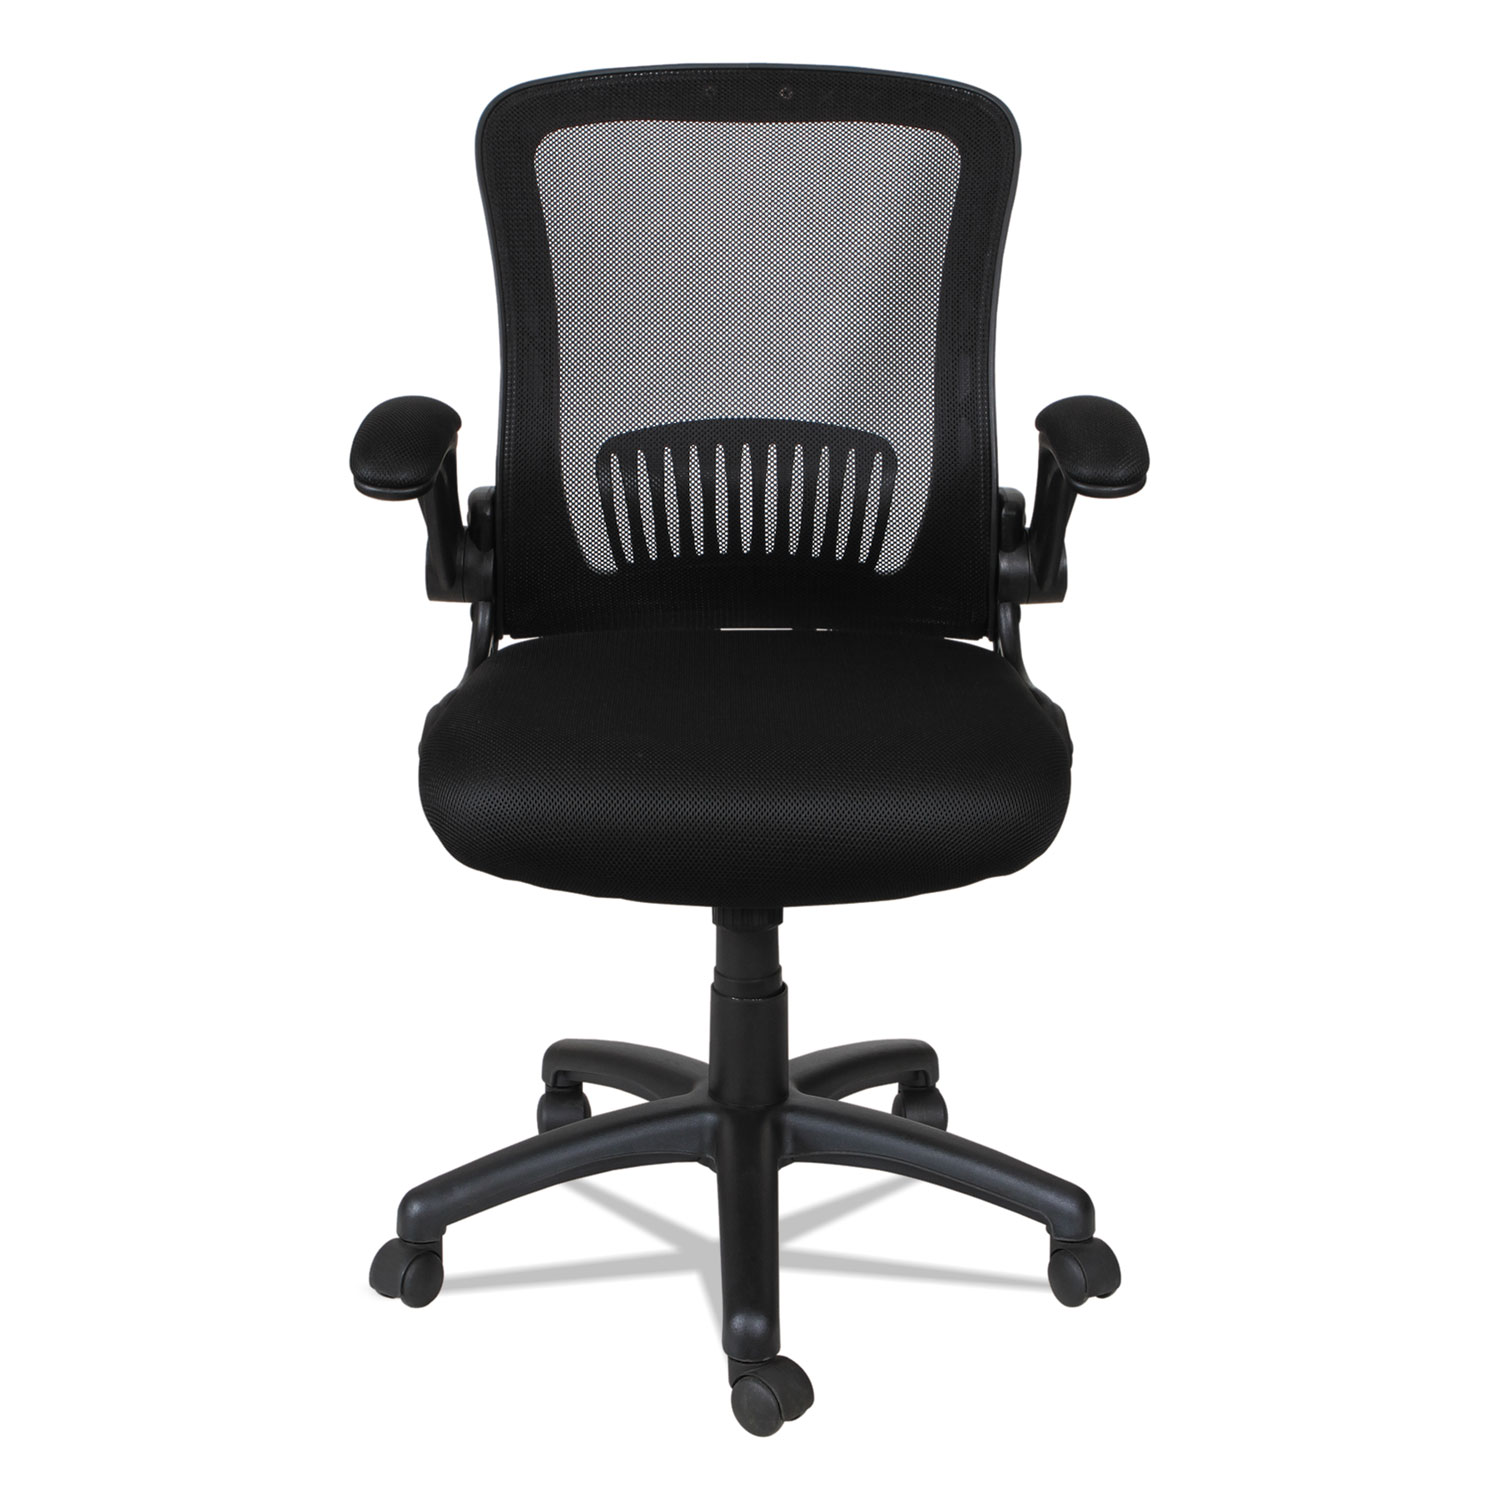 Alera Chair Alera Eb E Series Swivel Tilt Mid Back Mesh Chair By Alera